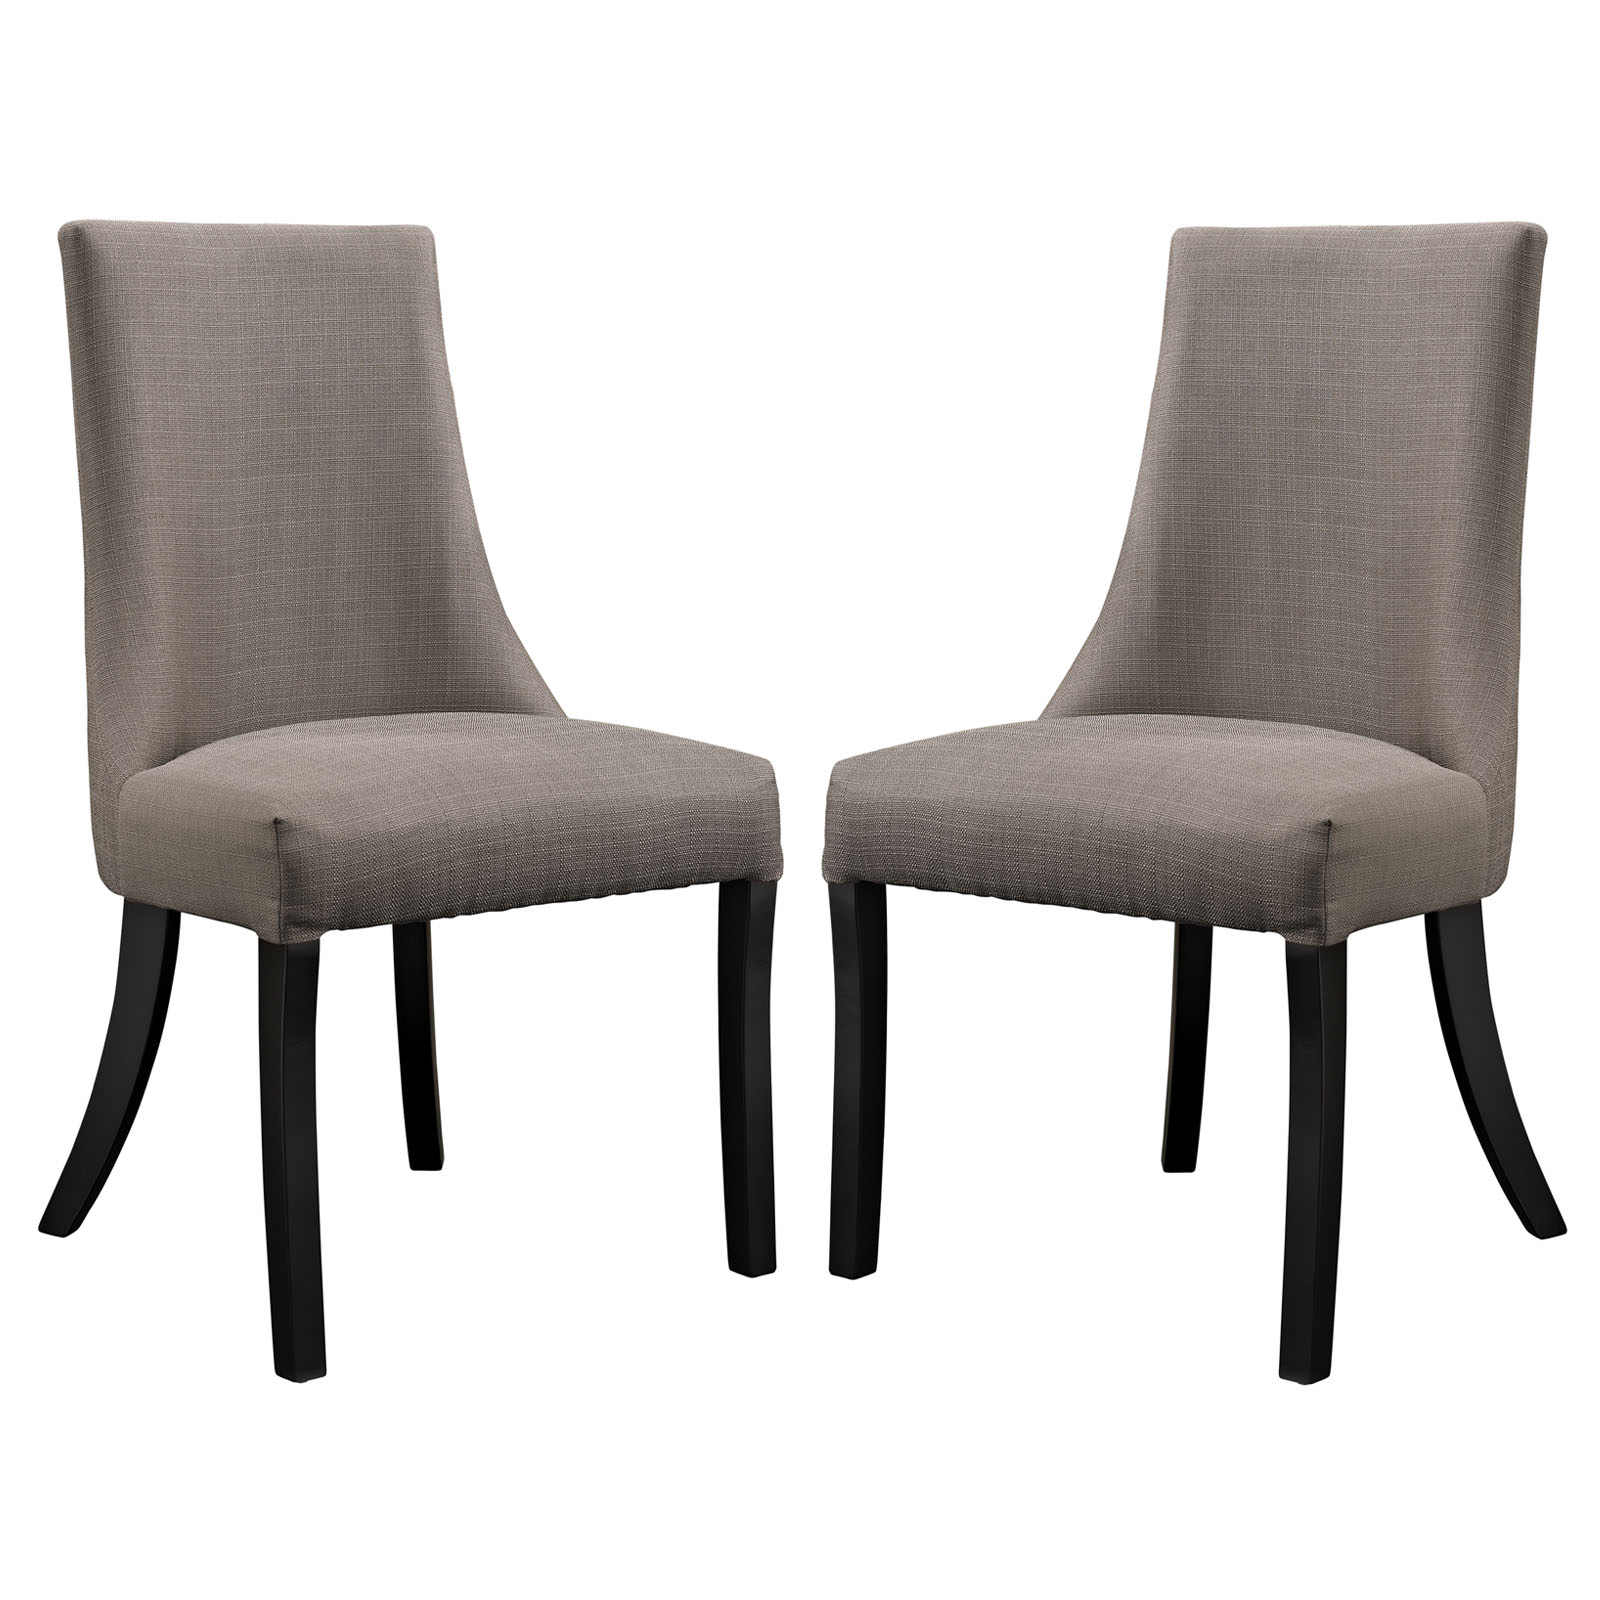 Modern Contemporary Kitchen Dining Side Chair Set of Two Gray